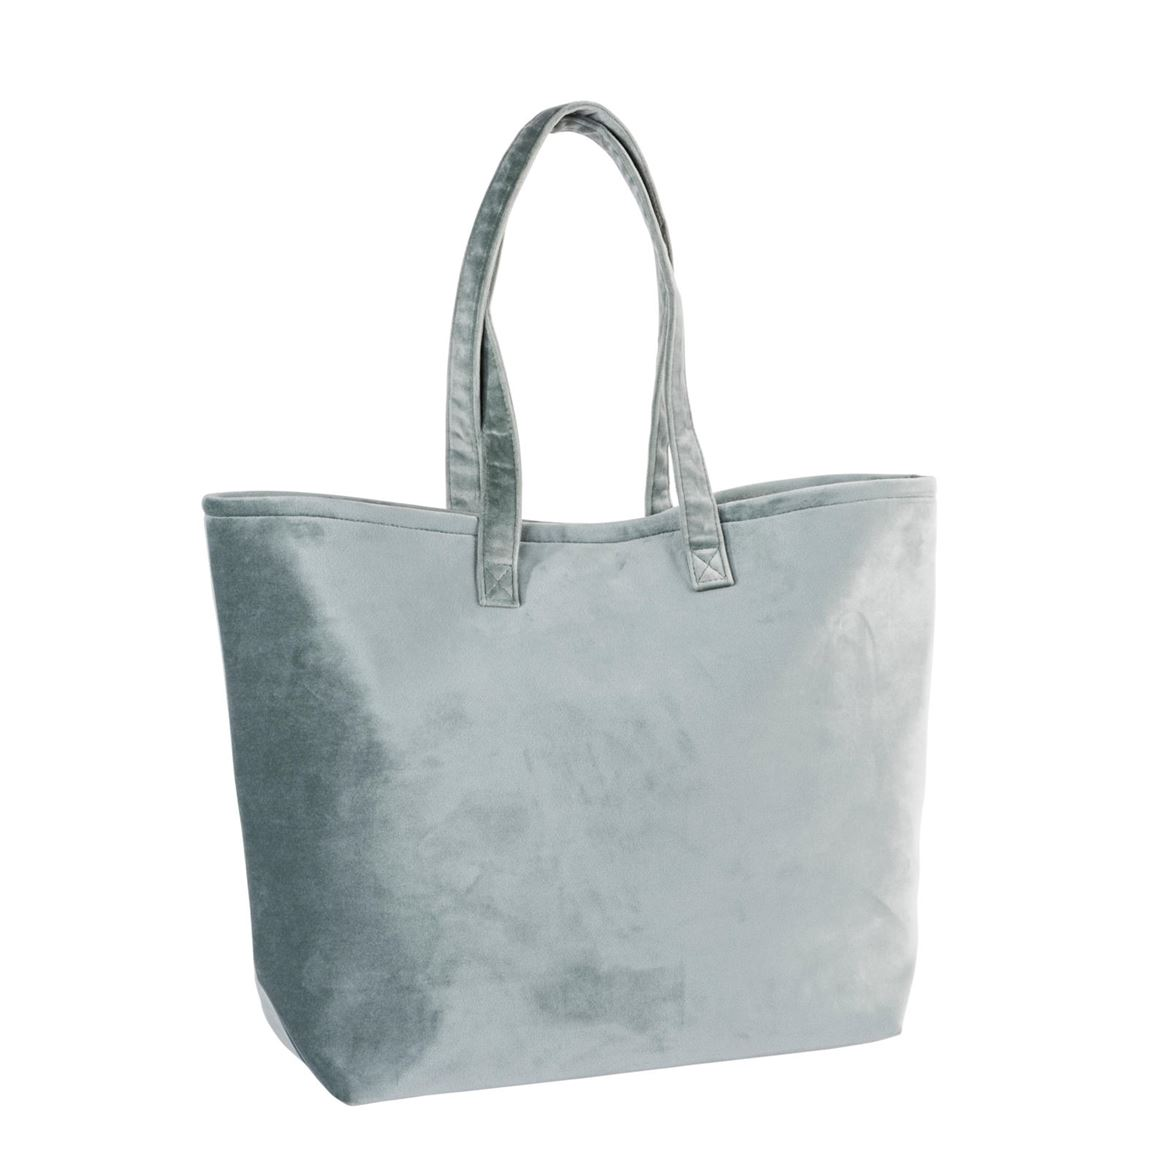 SUAVE Shopper menthe Larg. 37 x Long. 37 cm_suave-shopper-menthe-larg--37-x-long--37-cm